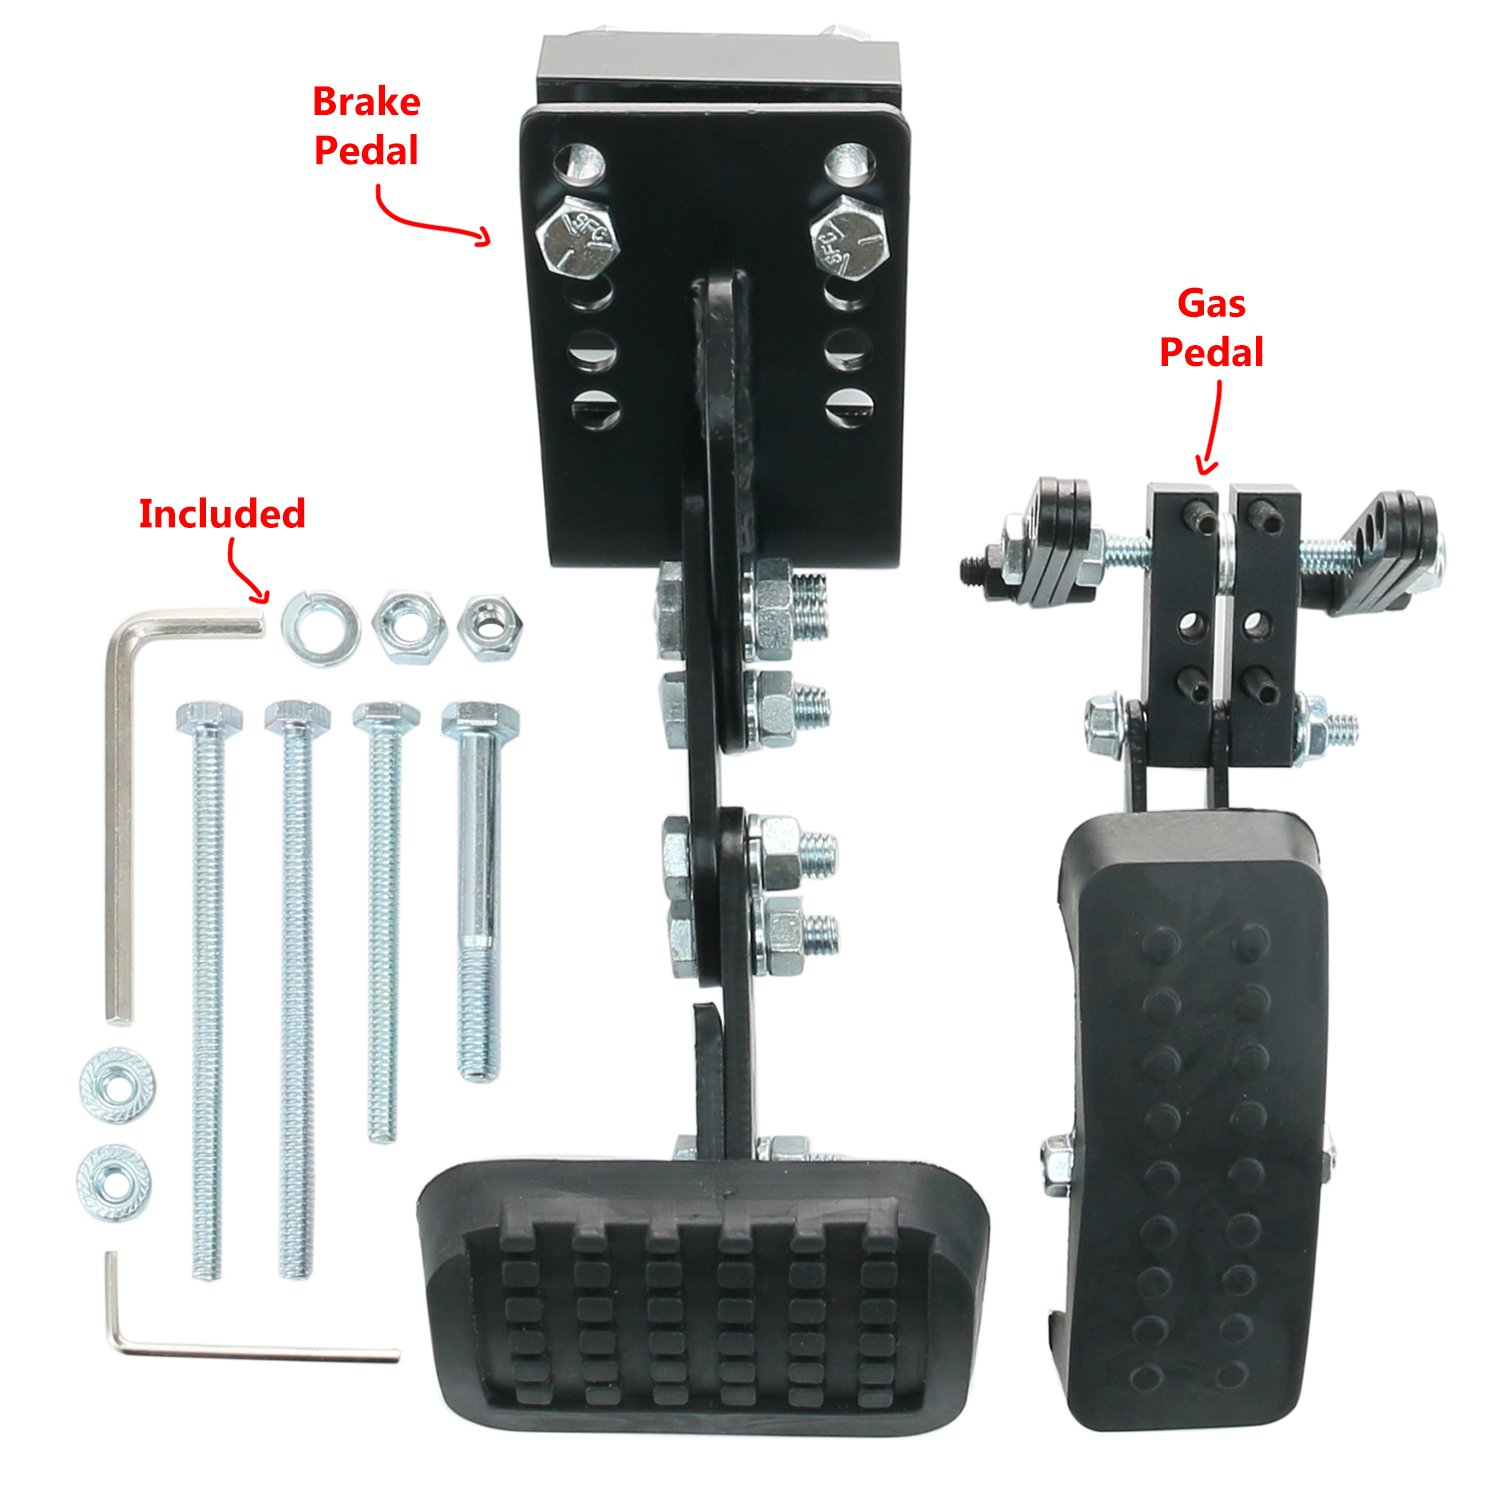 Best Gas And Brake Pedal Extender For Cars Automotive Manual Transmission Clutch Diagram Parts